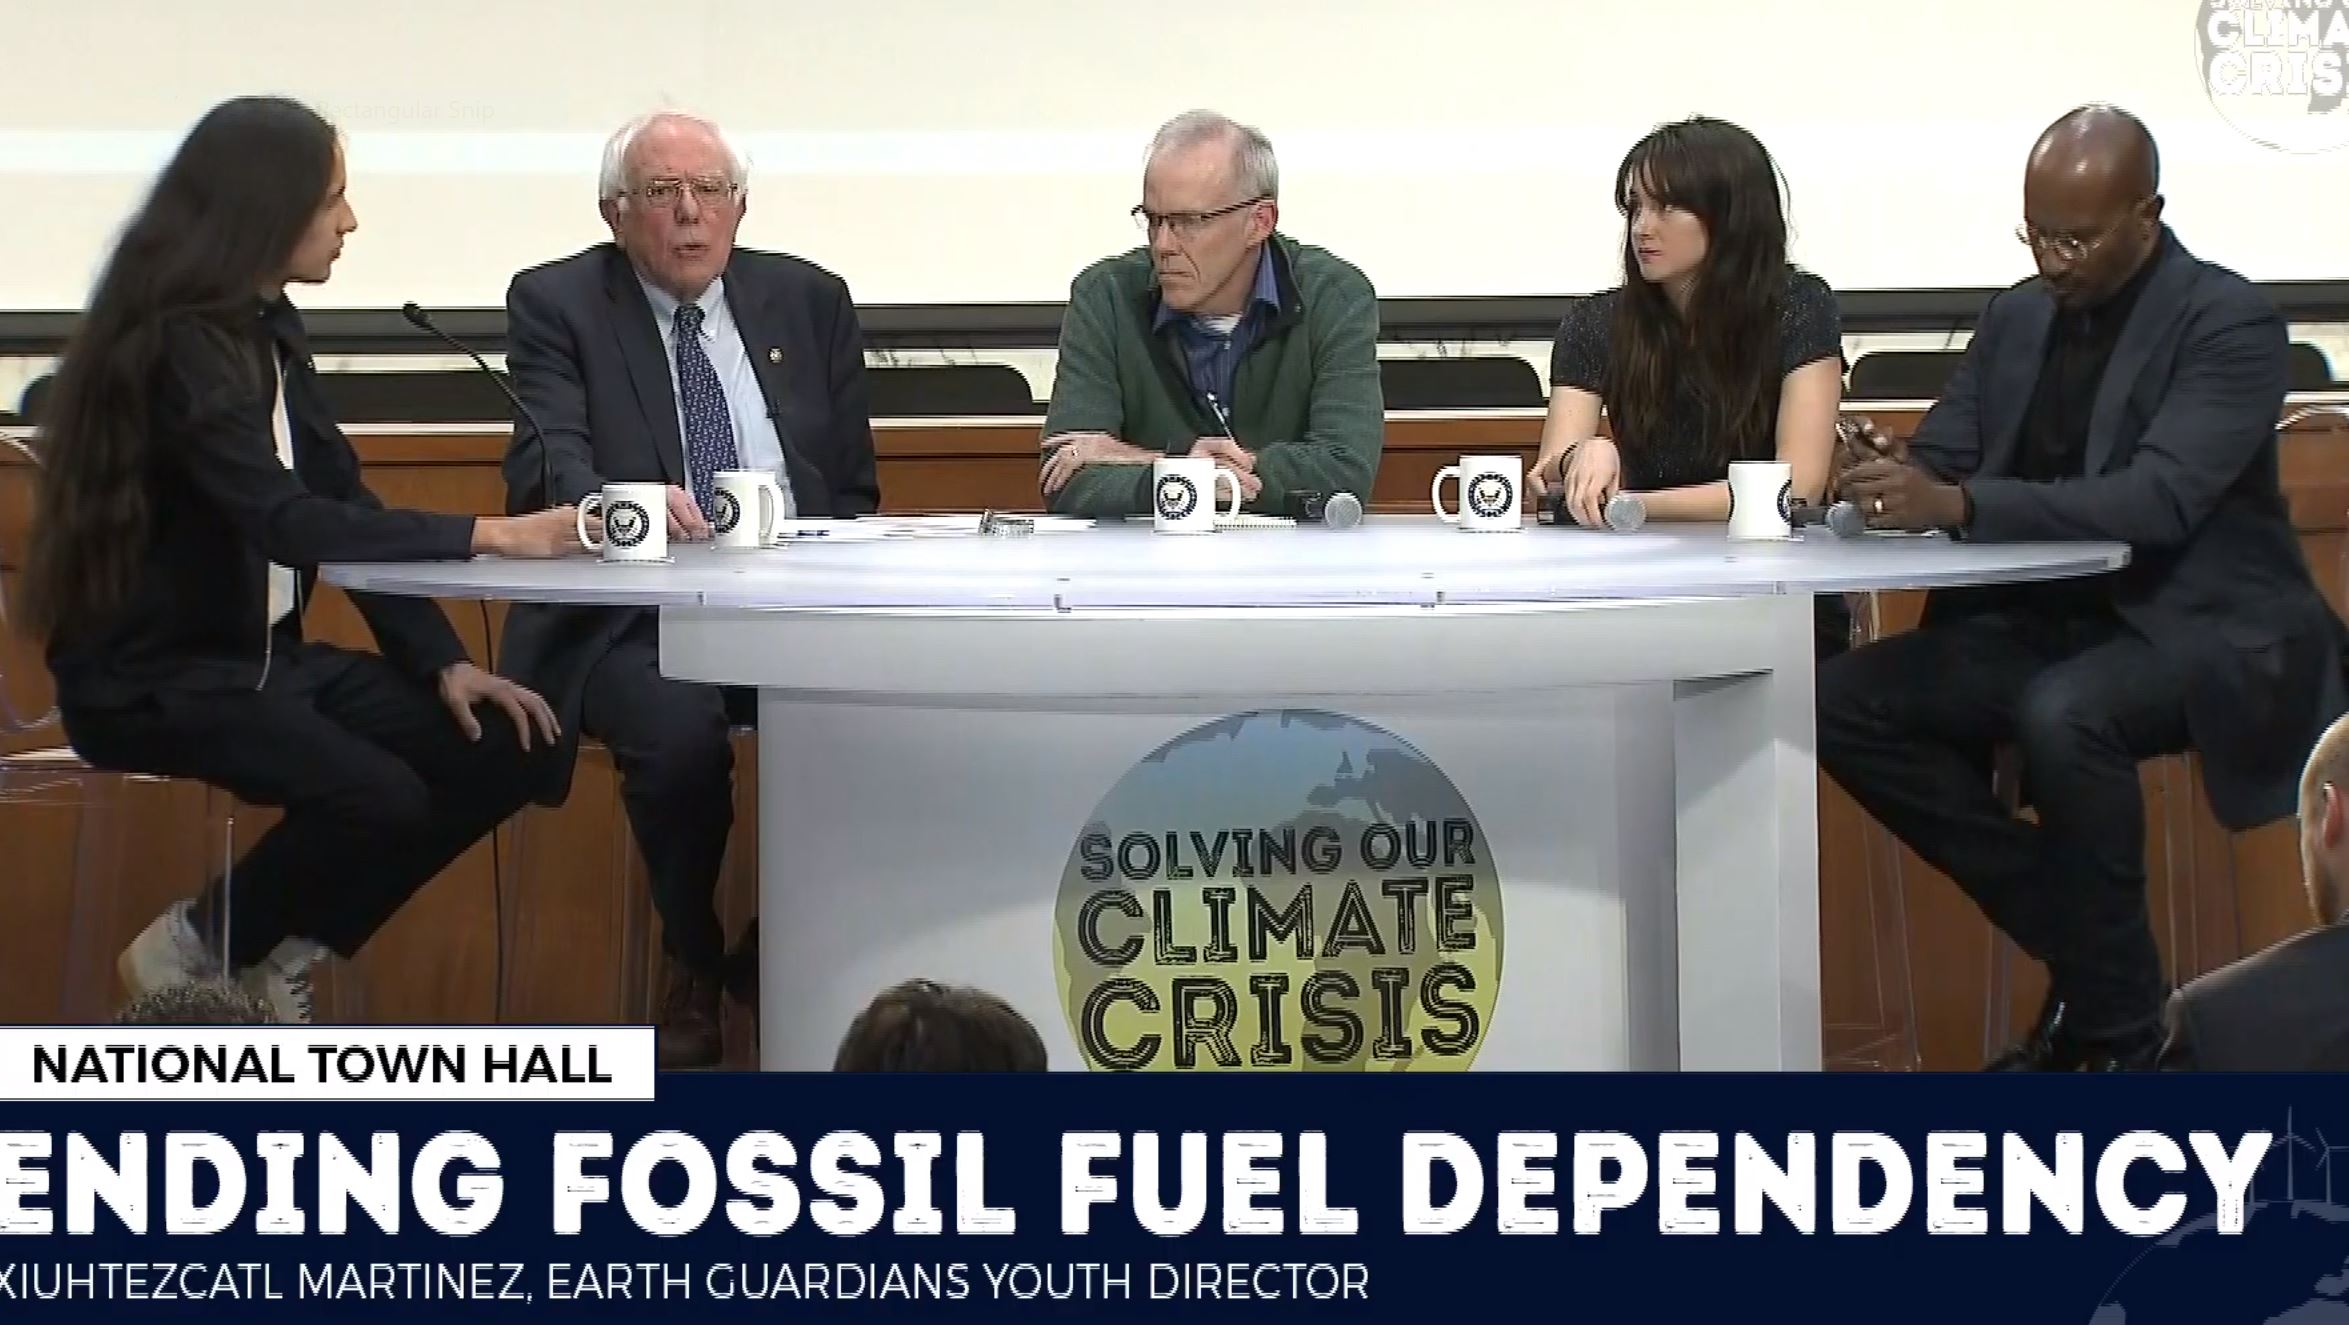 Bernie Climate Change National Town Hall (1).JPG